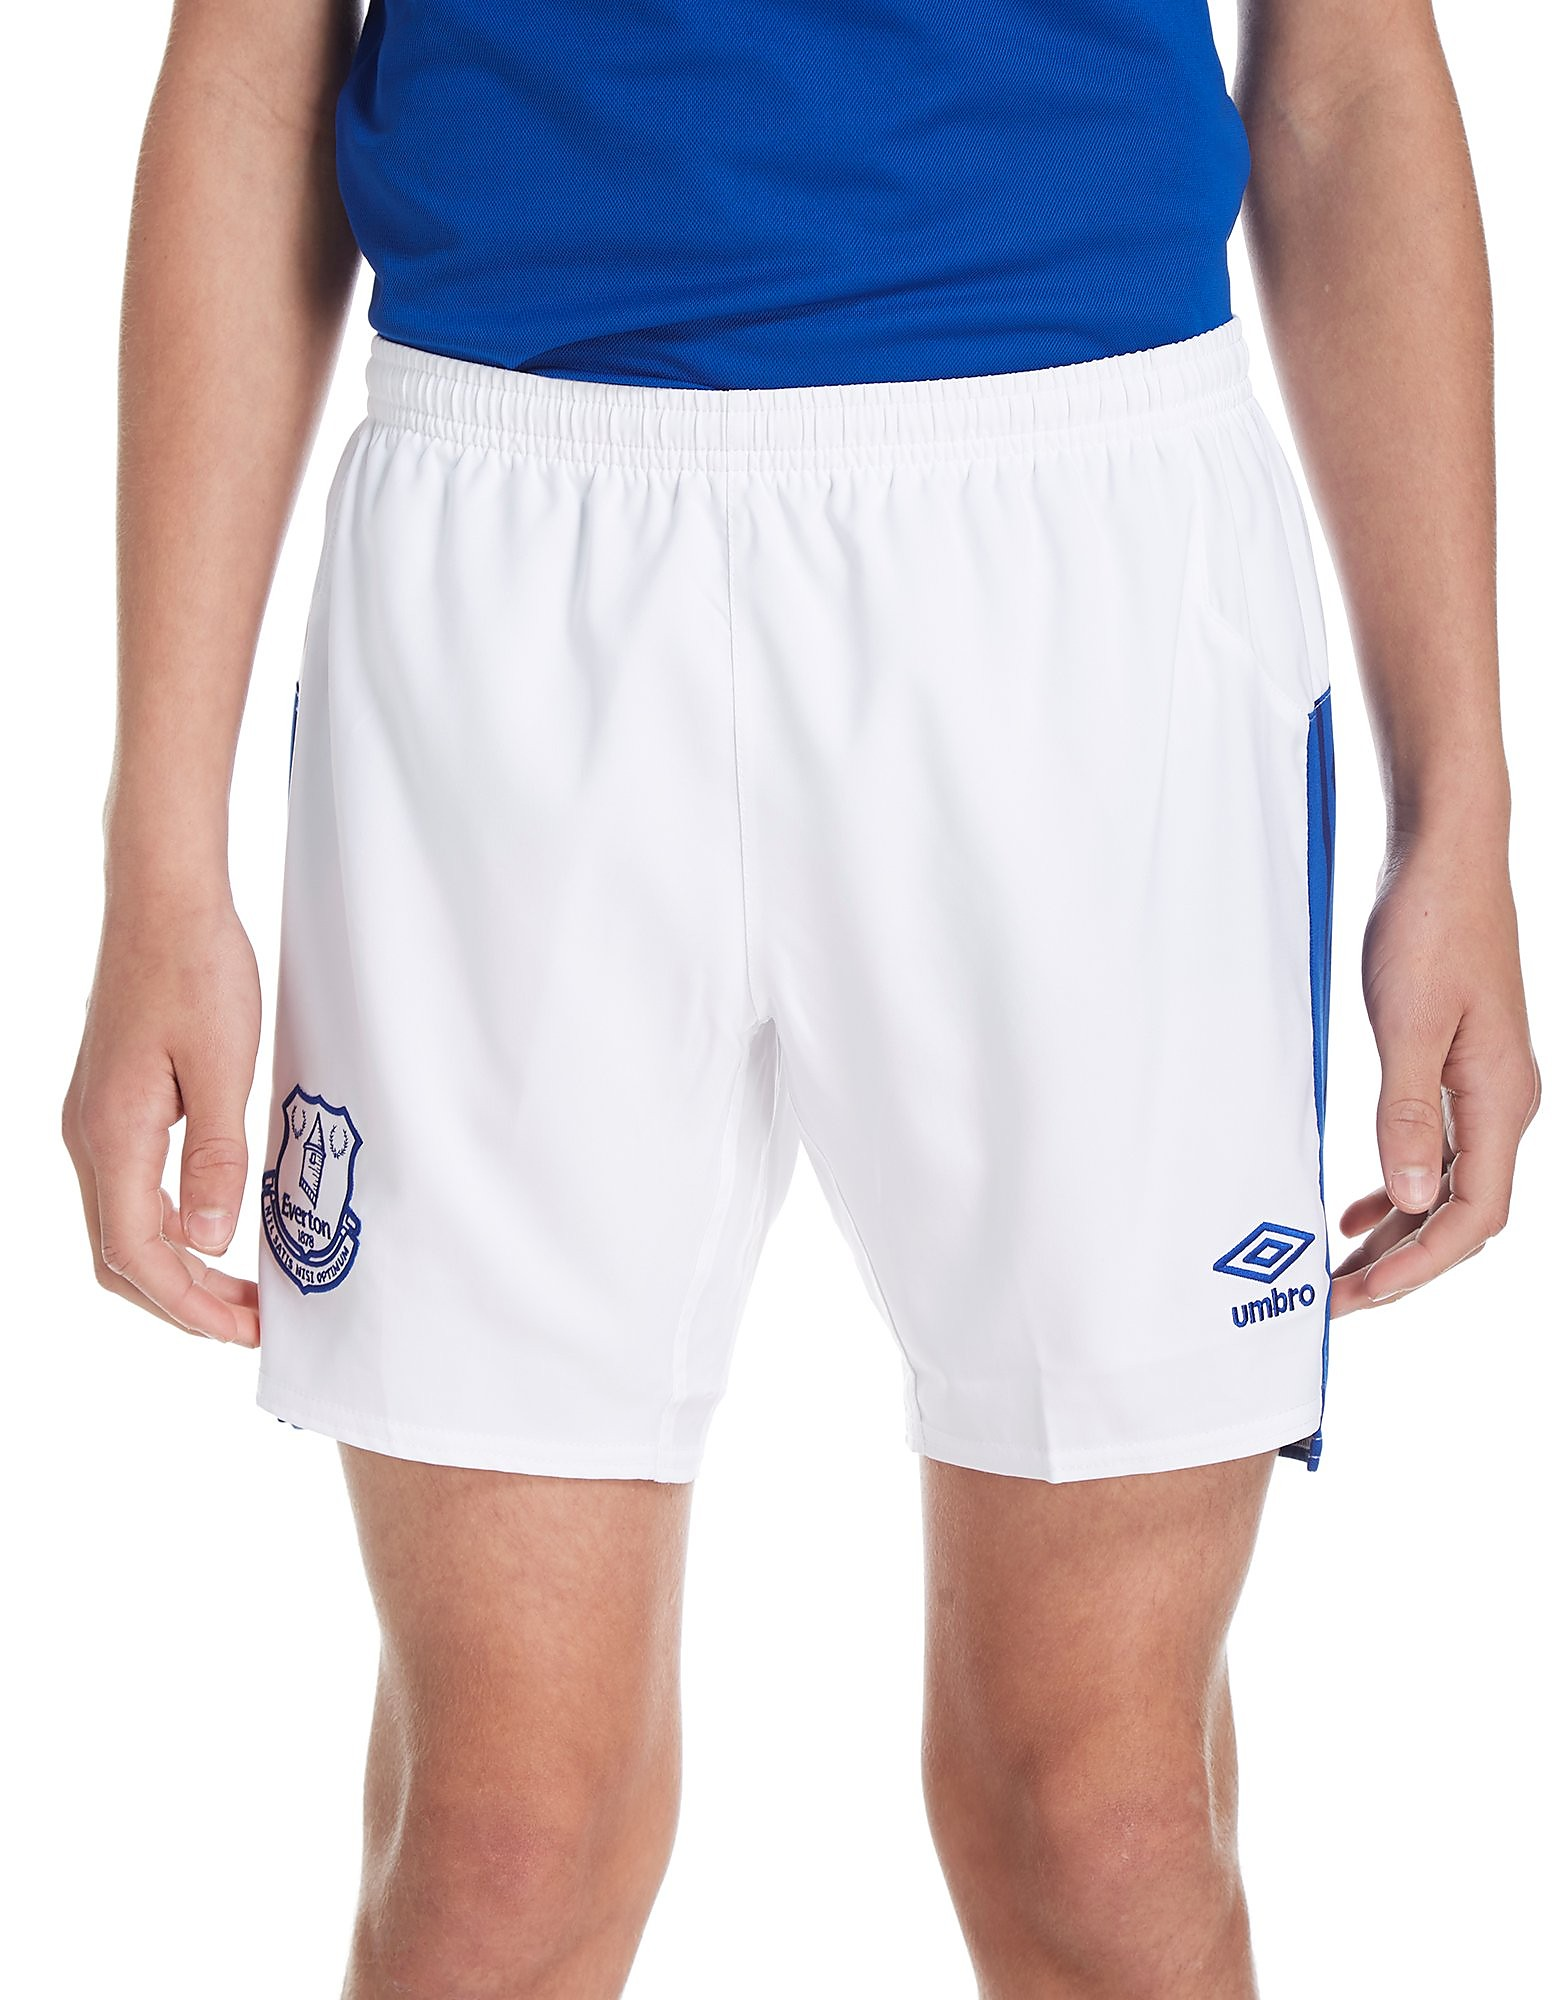 Umbro Everton FC 2017/18 Home Shorts Junior PRE ORDER